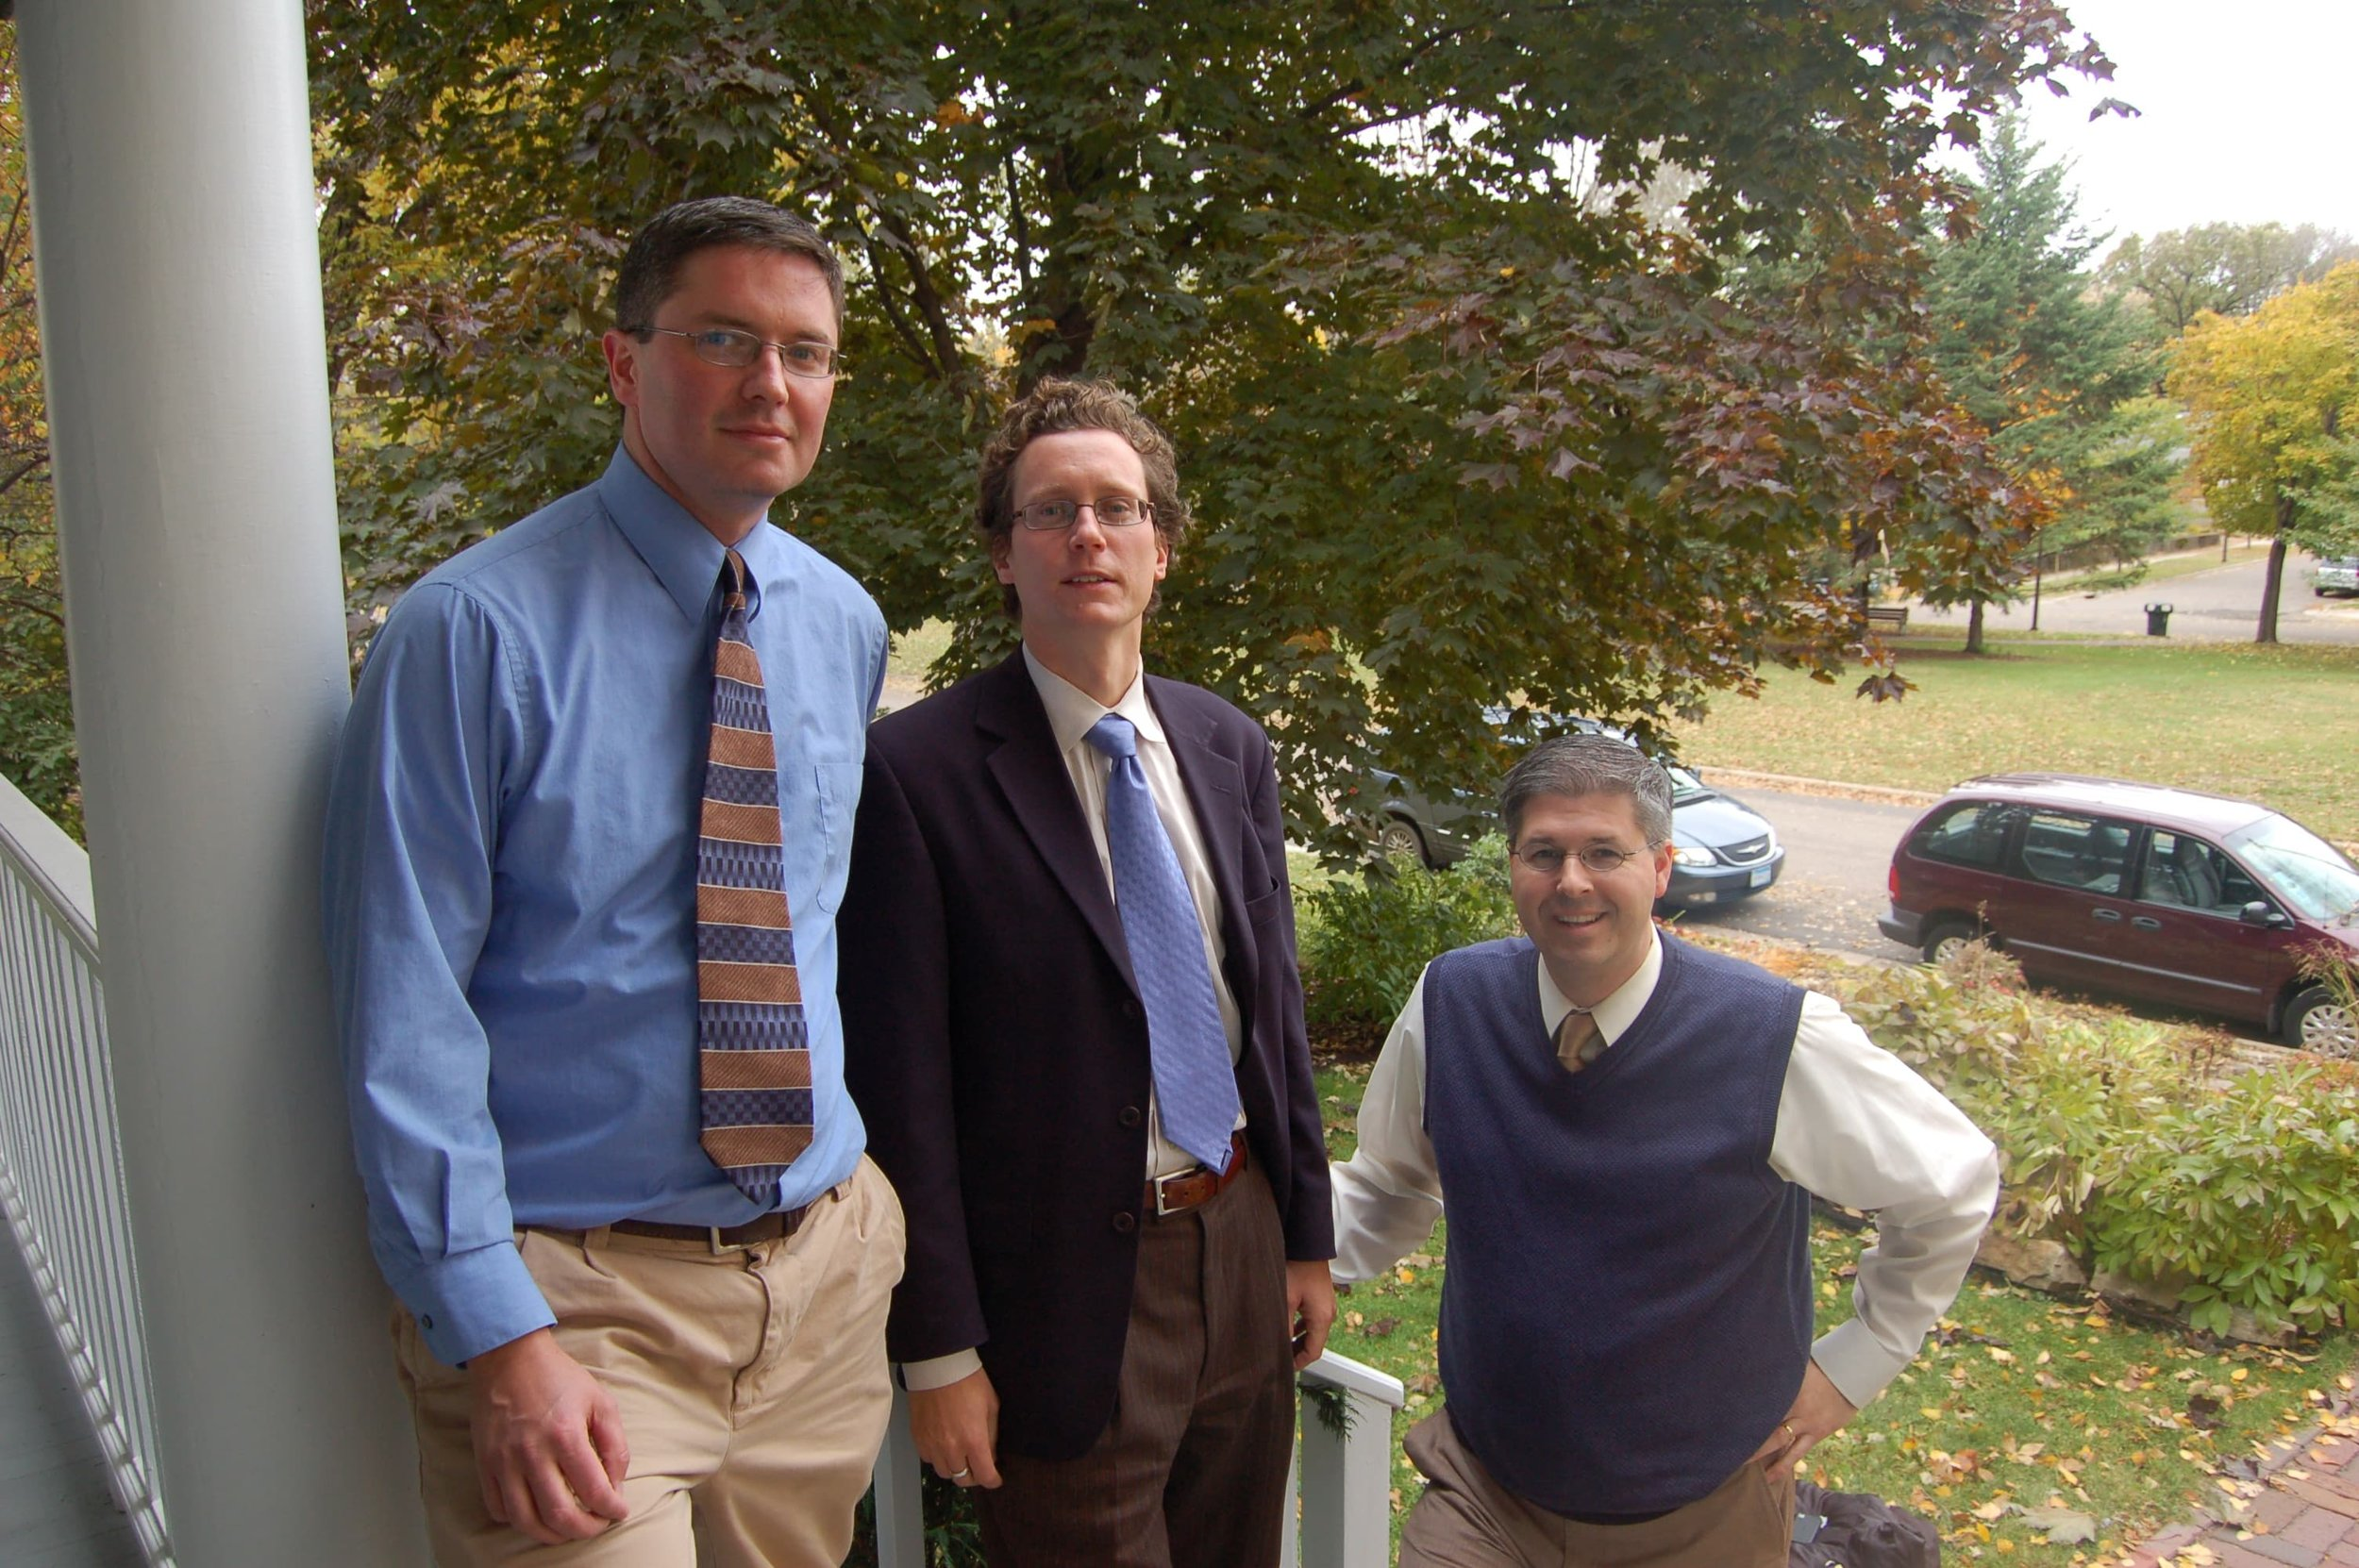 Ben Oleson, Jon Commers and Chuck Marohn — the original Strong Towns crew